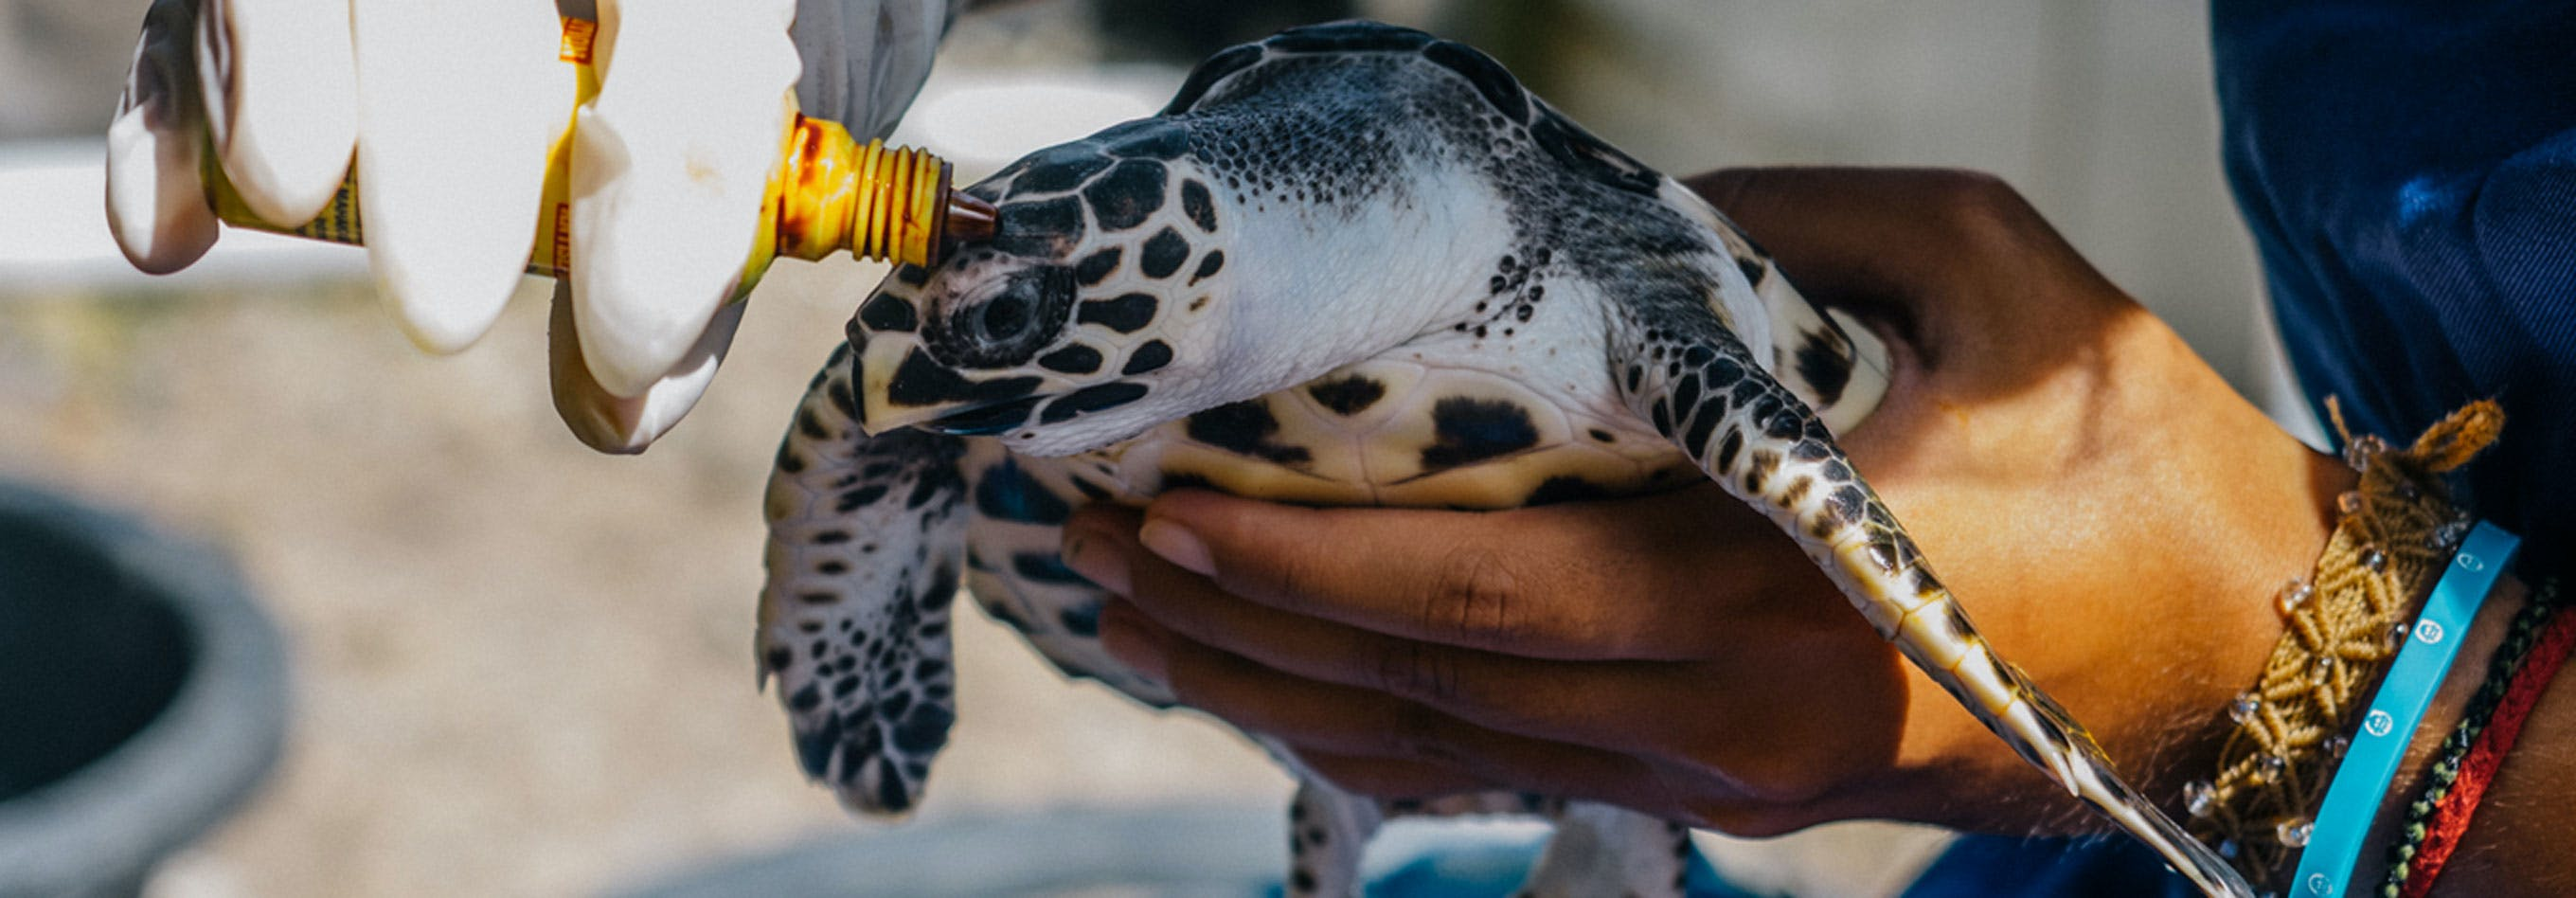 Affordable Marine and Sea Turtle Conservation Volunteer Abroad Projects